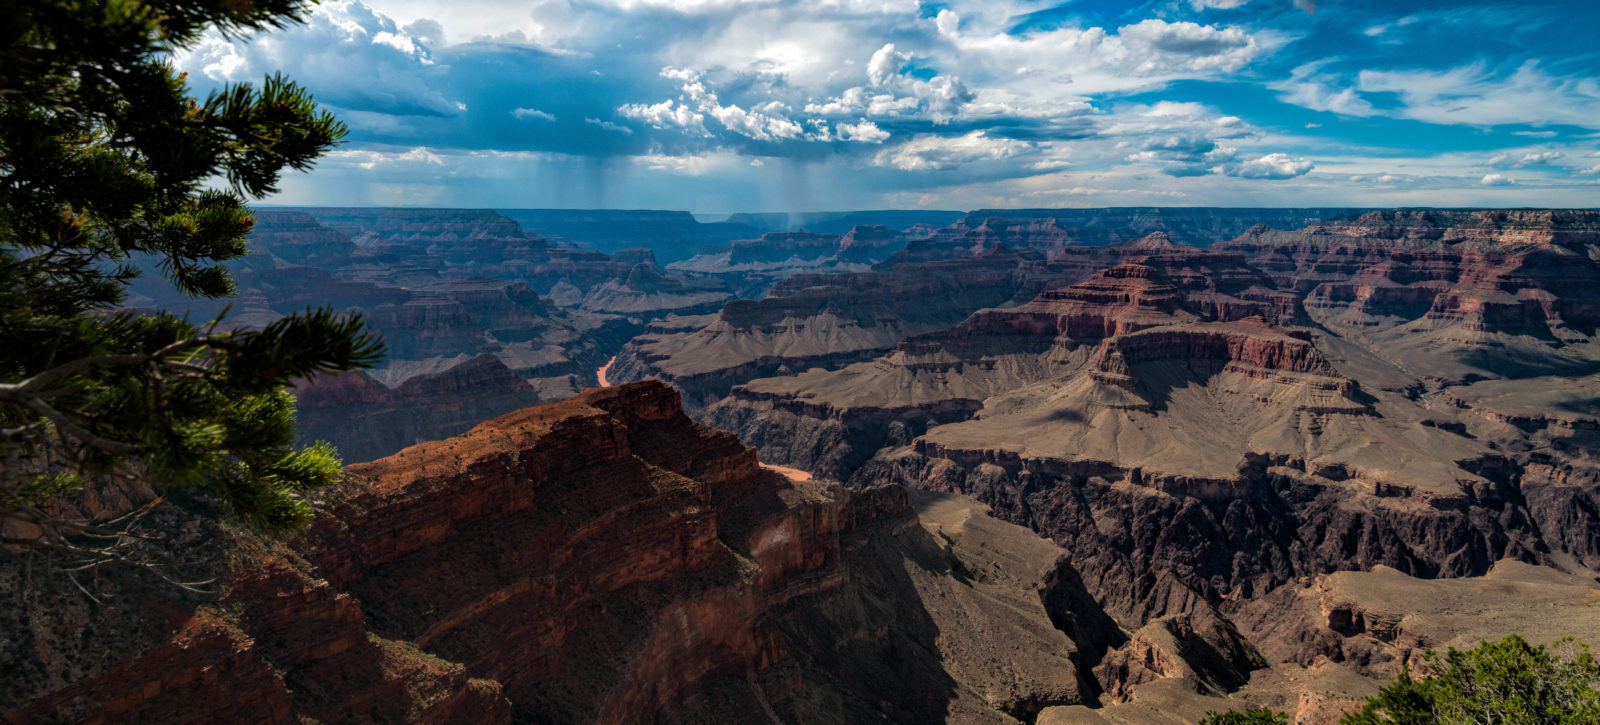 Looking into the Grand Canyon from South Rim